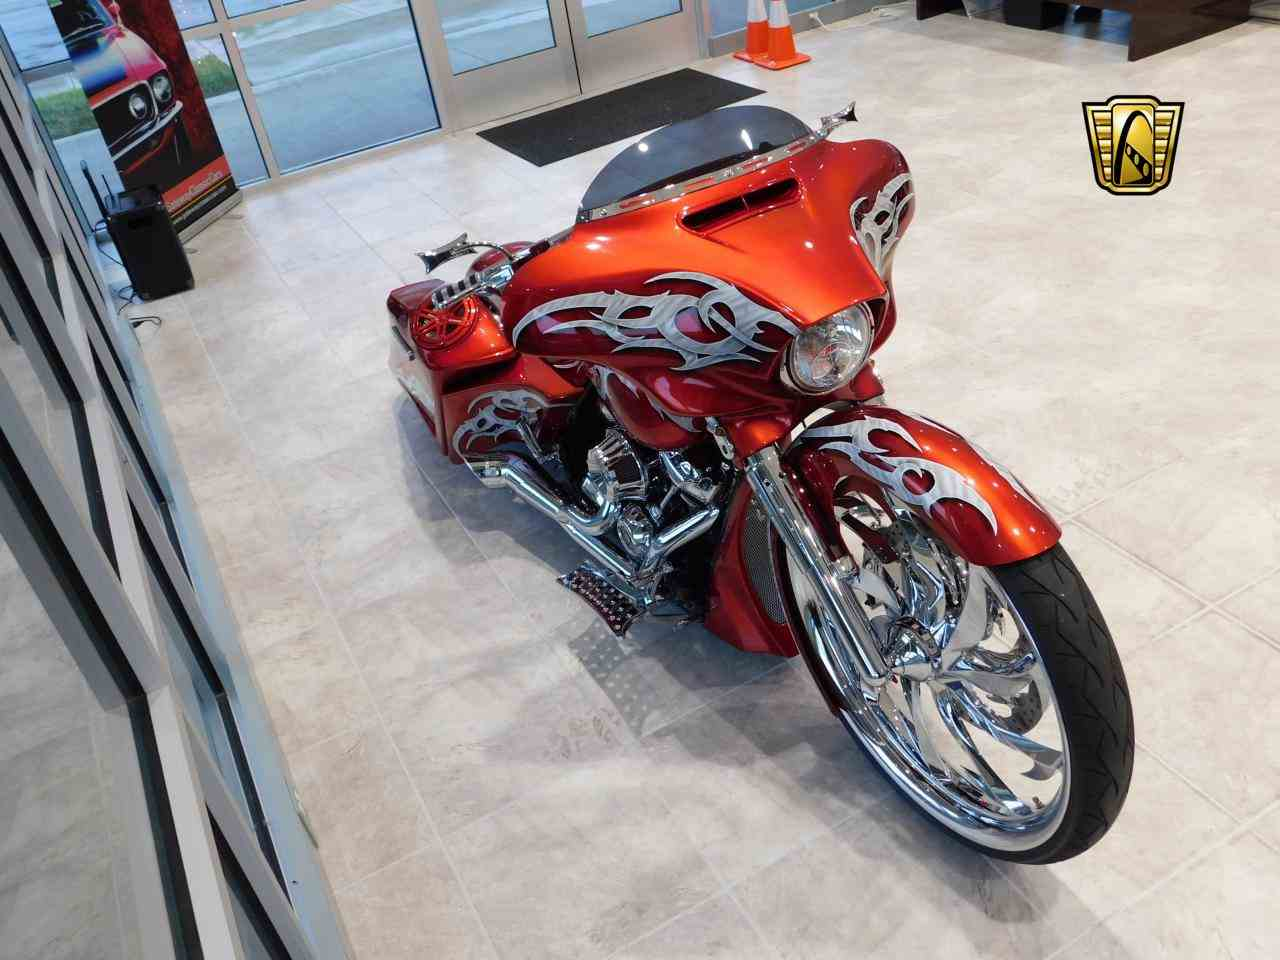 Large Picture of 2017 Harley-Davidson Motorcycle - $98,000.00 Offered by Gateway Classic Cars - Atlanta - MOAJ